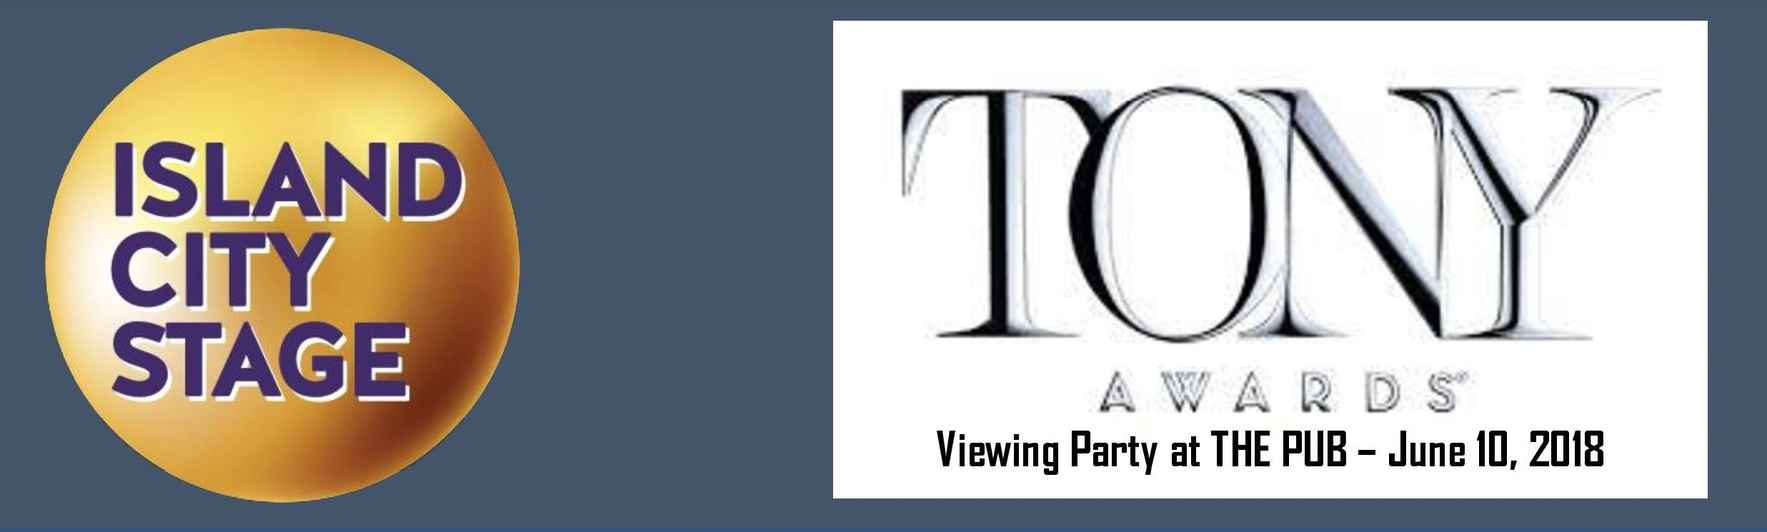 Island City Stage Tony Awards Viewing Party image